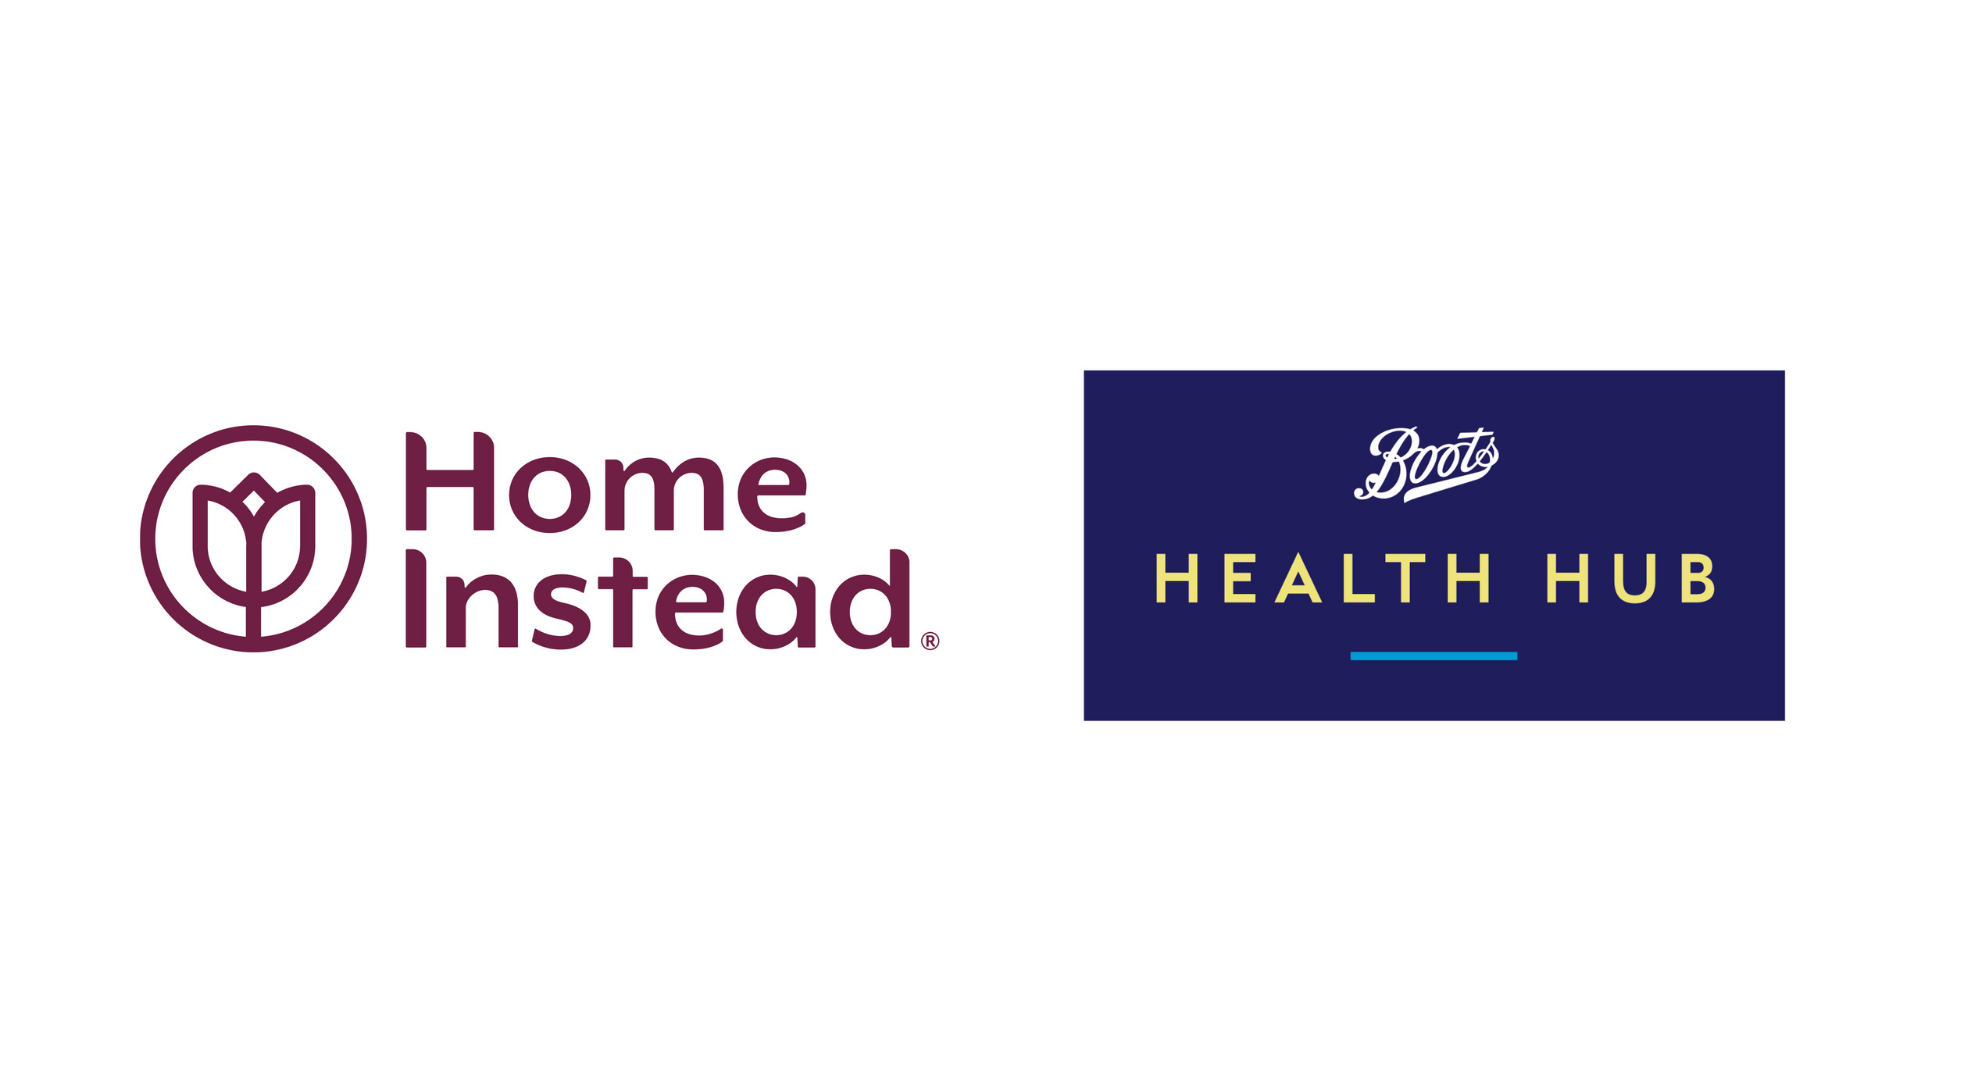 Home Instead partners with Boots UK